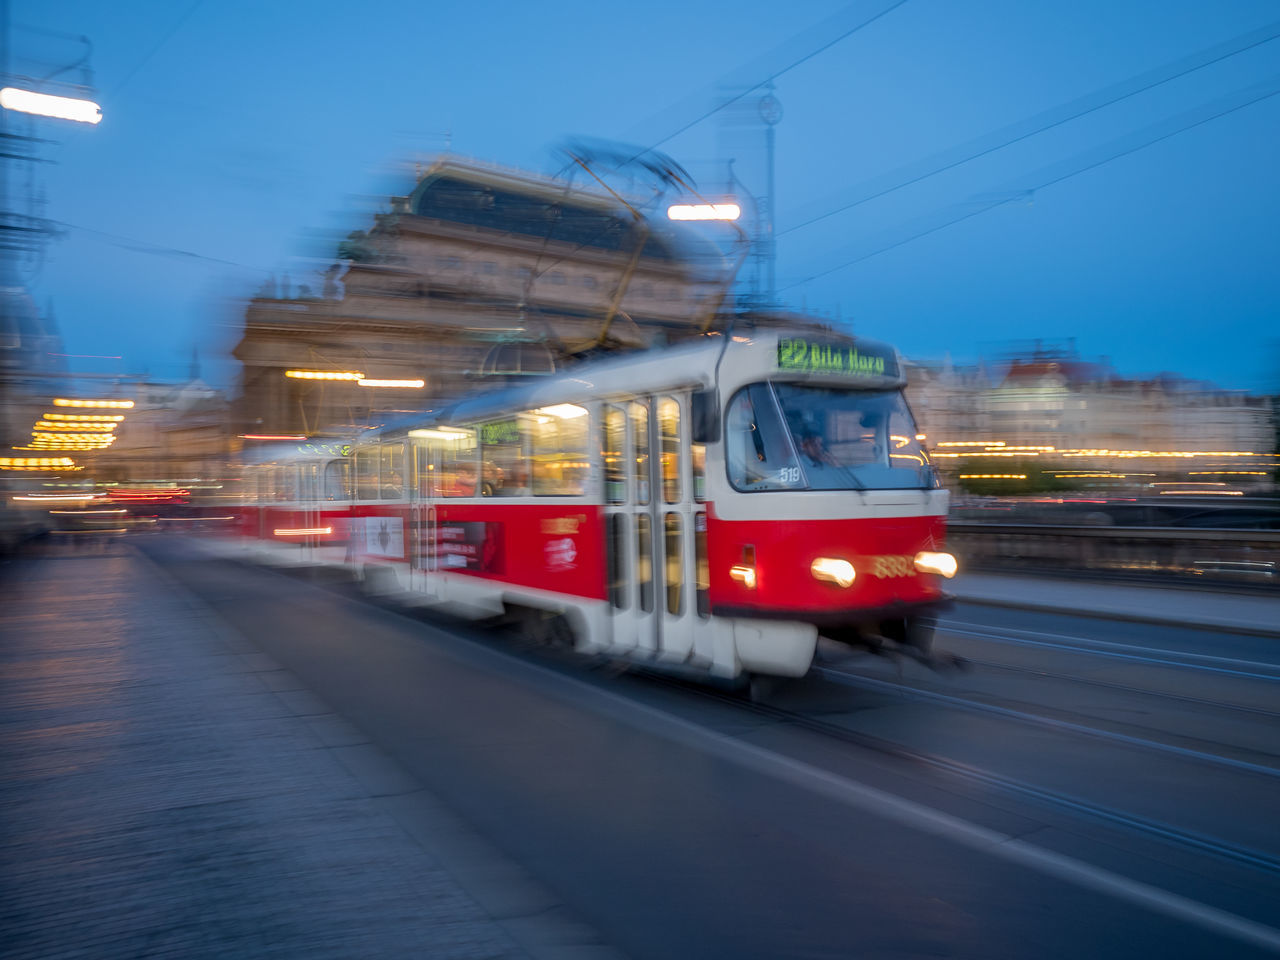 transportation, blurred motion, motion, illuminated, mode of transport, cable, public transportation, land vehicle, night, outdoors, no people, building exterior, electricity pylon, architecture, sky